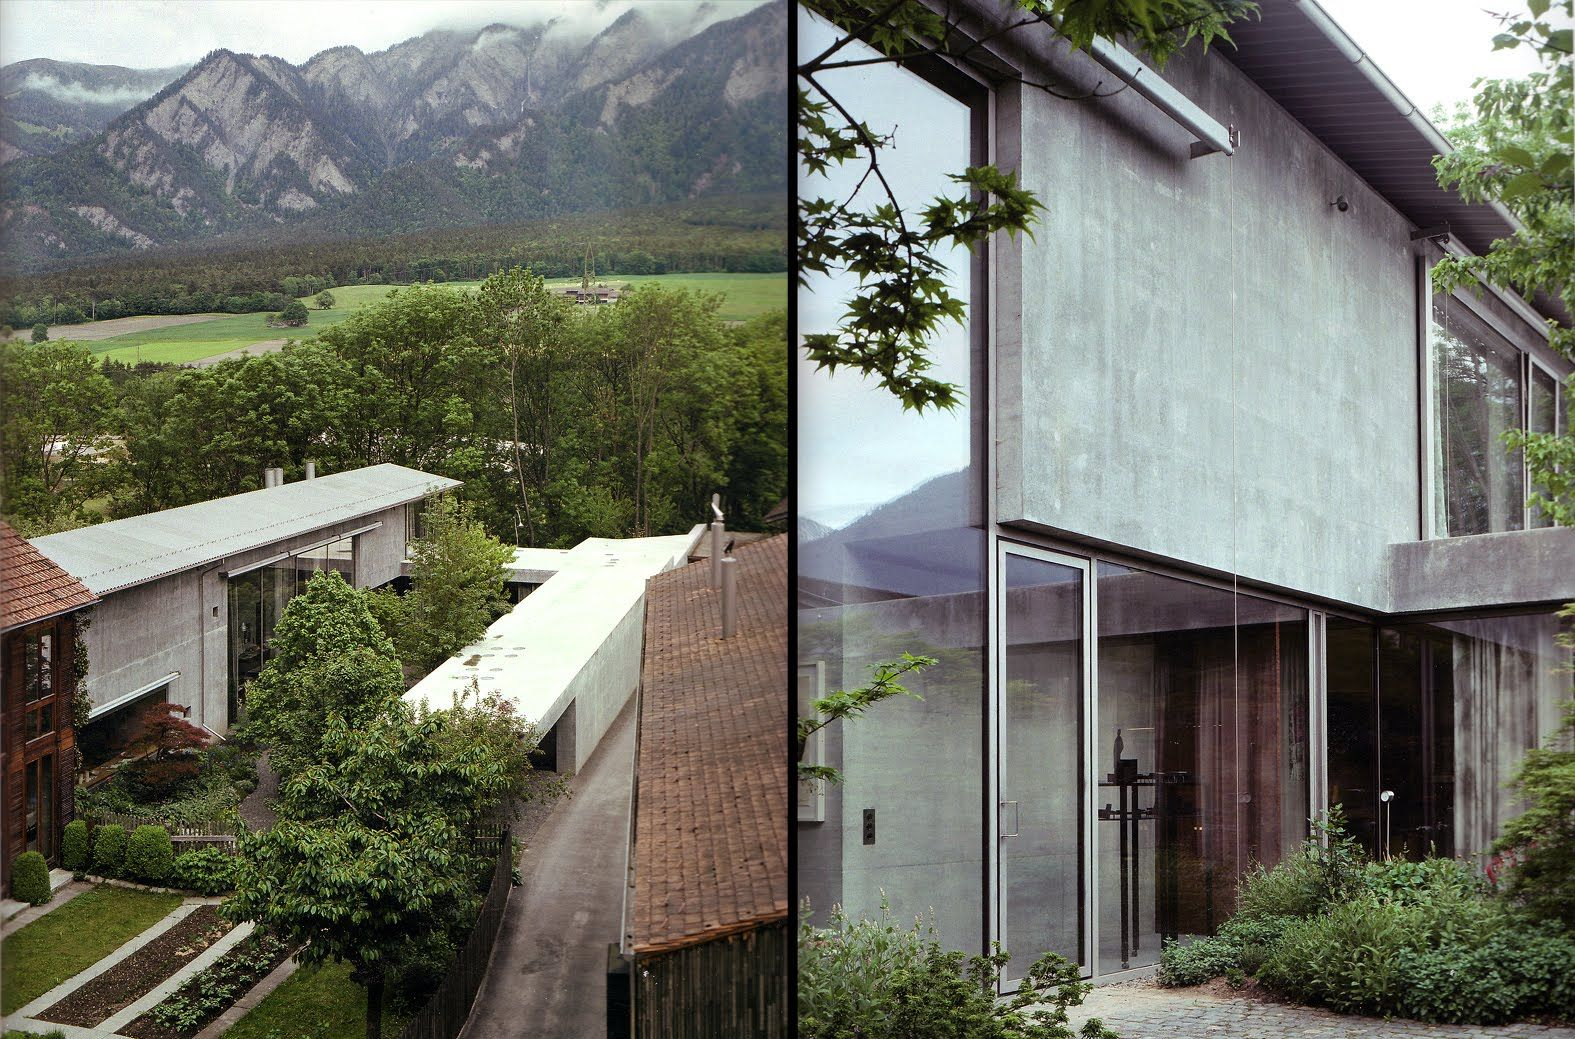 peter zumthor / architect's studio, haldenstein Peter